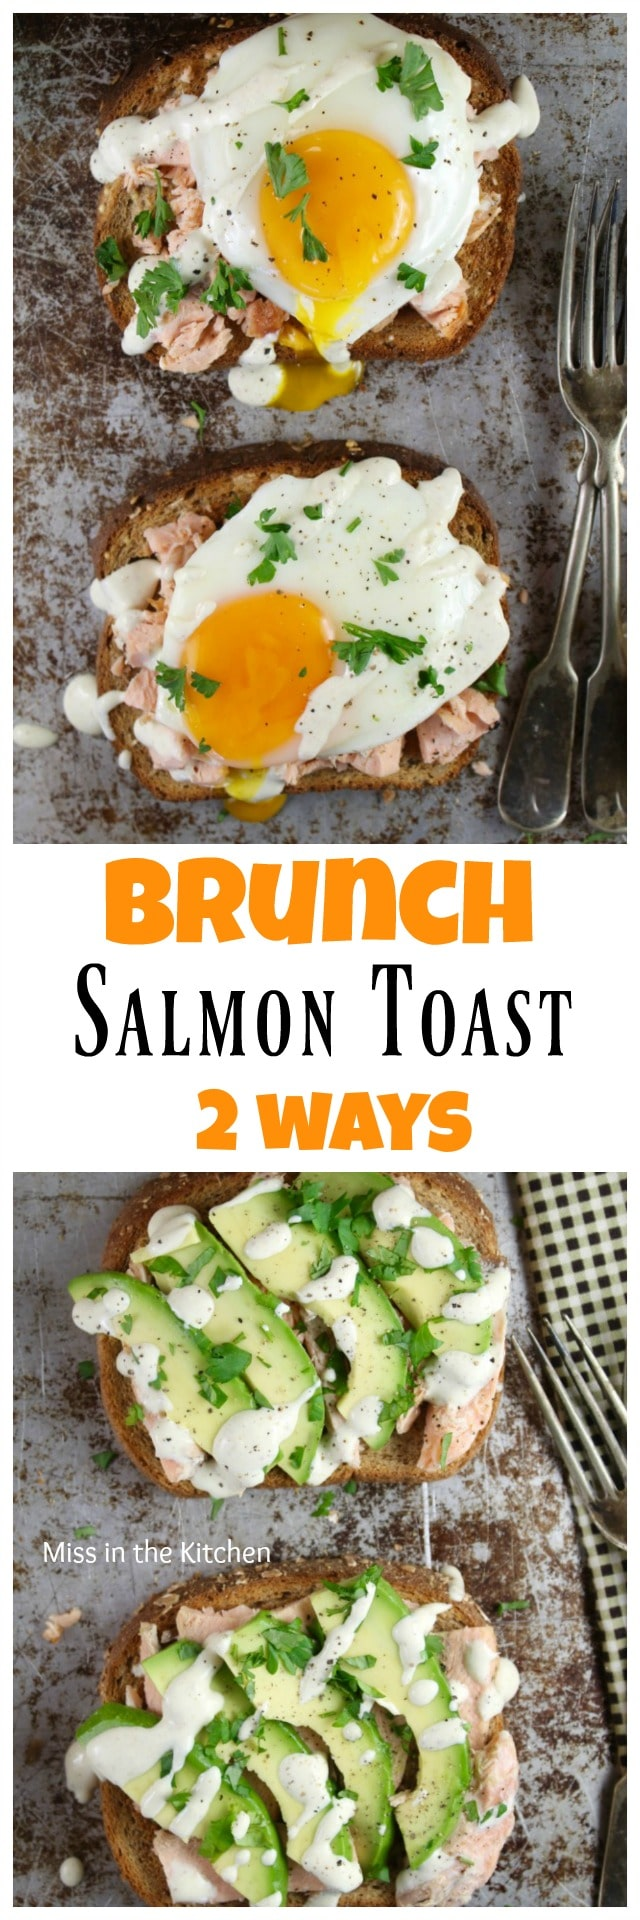 Salmon Toast Two Ways with Pepperidge Farm Harvest Grains Bread from MissintheKitchen.com #ad